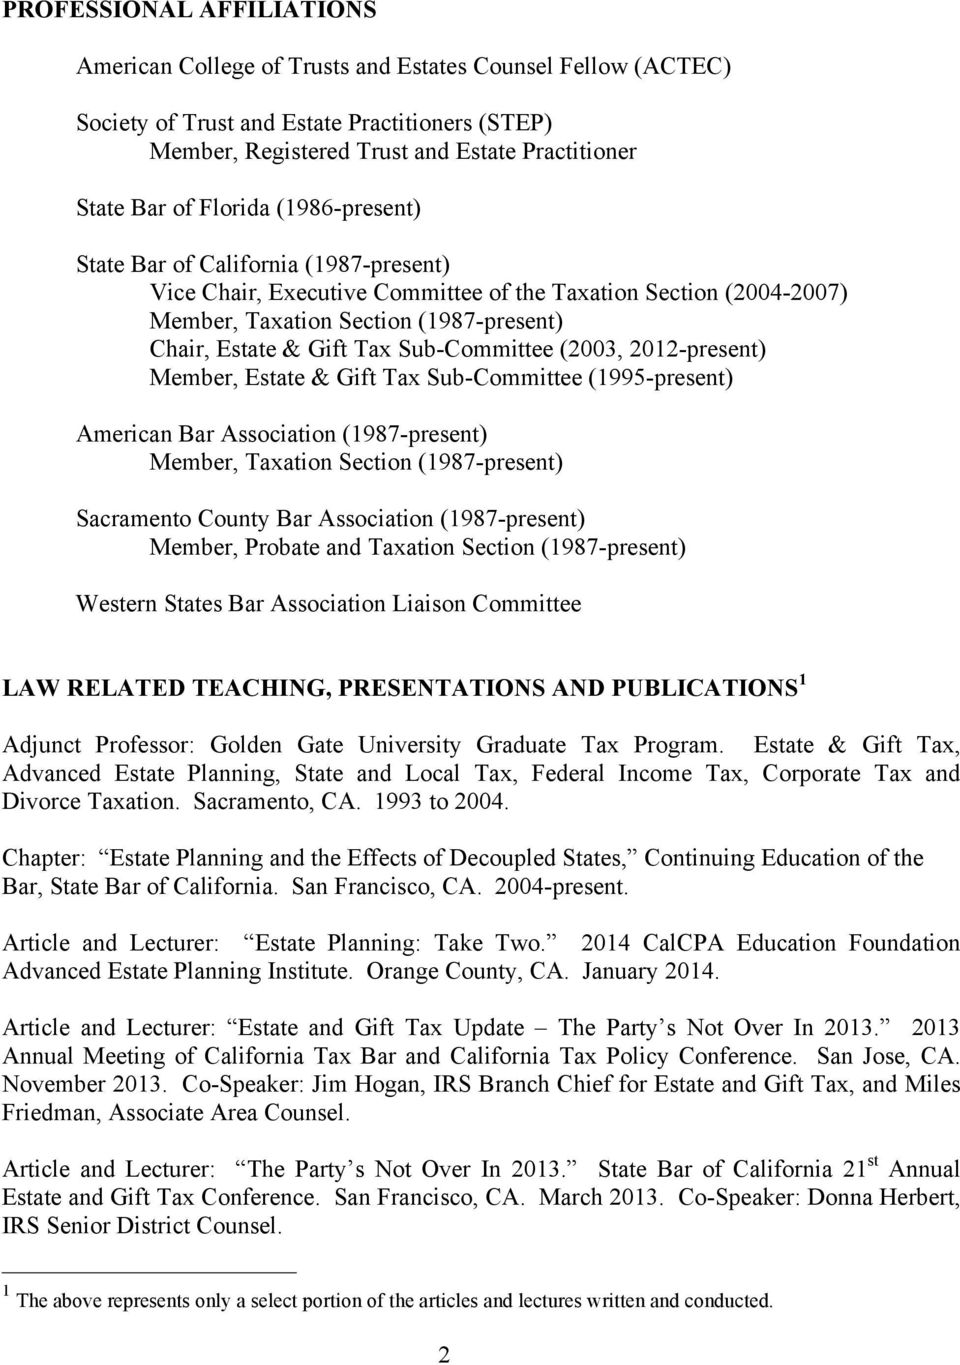 Sub-Committee (2003, 2012-present) Member, Estate & Gift Tax Sub-Committee (1995-present) American Bar Association (1987-present) Member, Taxation Section (1987-present) Sacramento County Bar